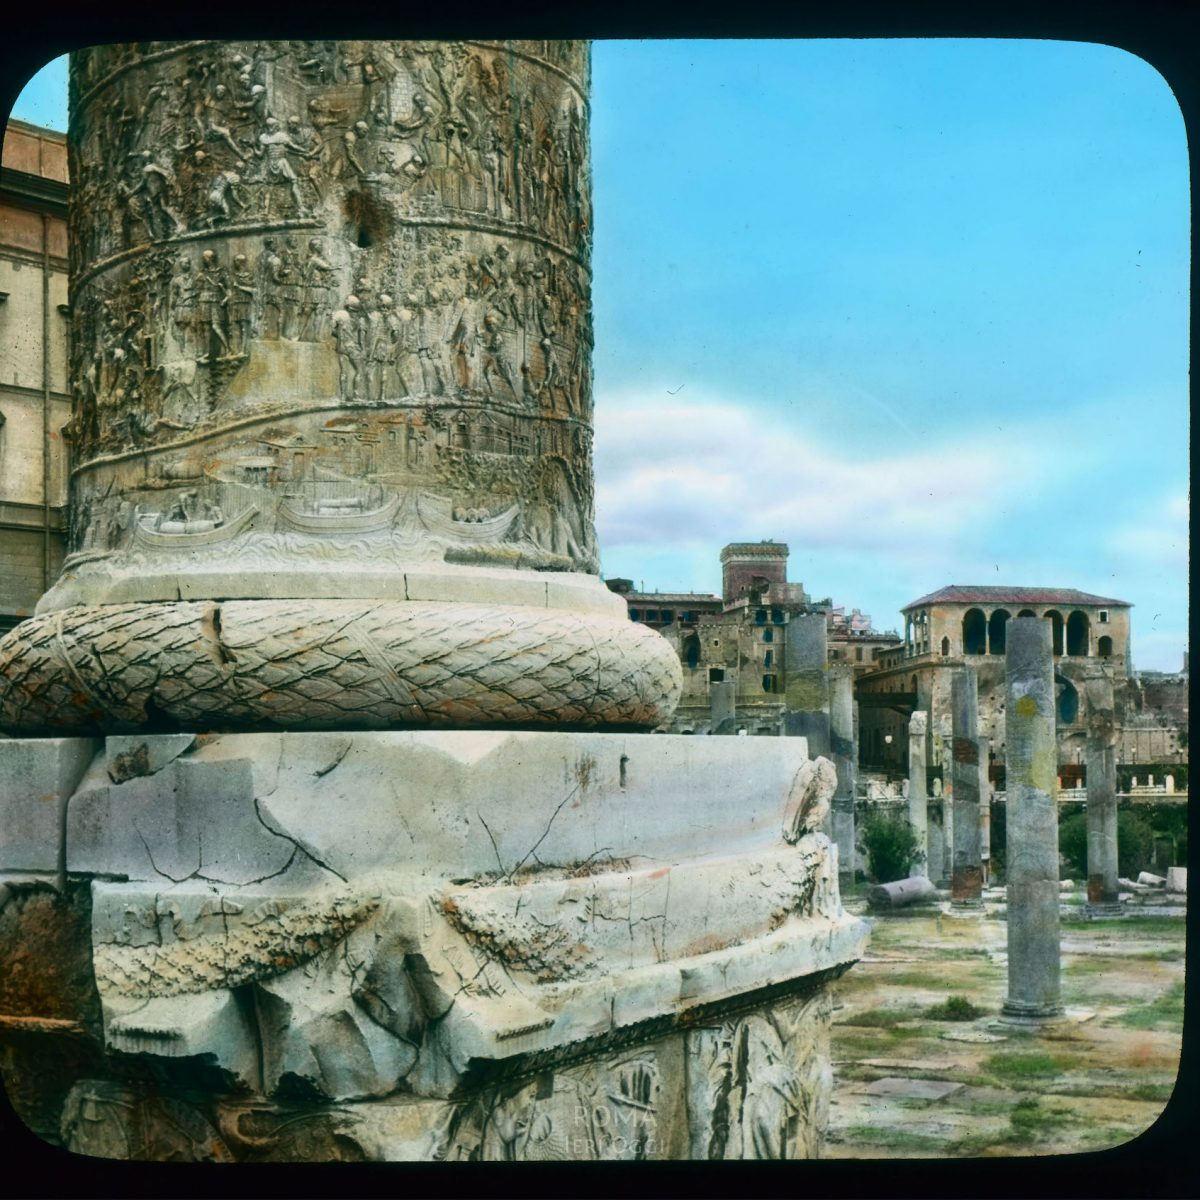 Rome. Trajan's Forum: Trajan's Column detail, base with spiral relief of Trajan's Dacian campaign View in tinted lantern slide, ca. 1919-1938. The column dates from 113 C.E.